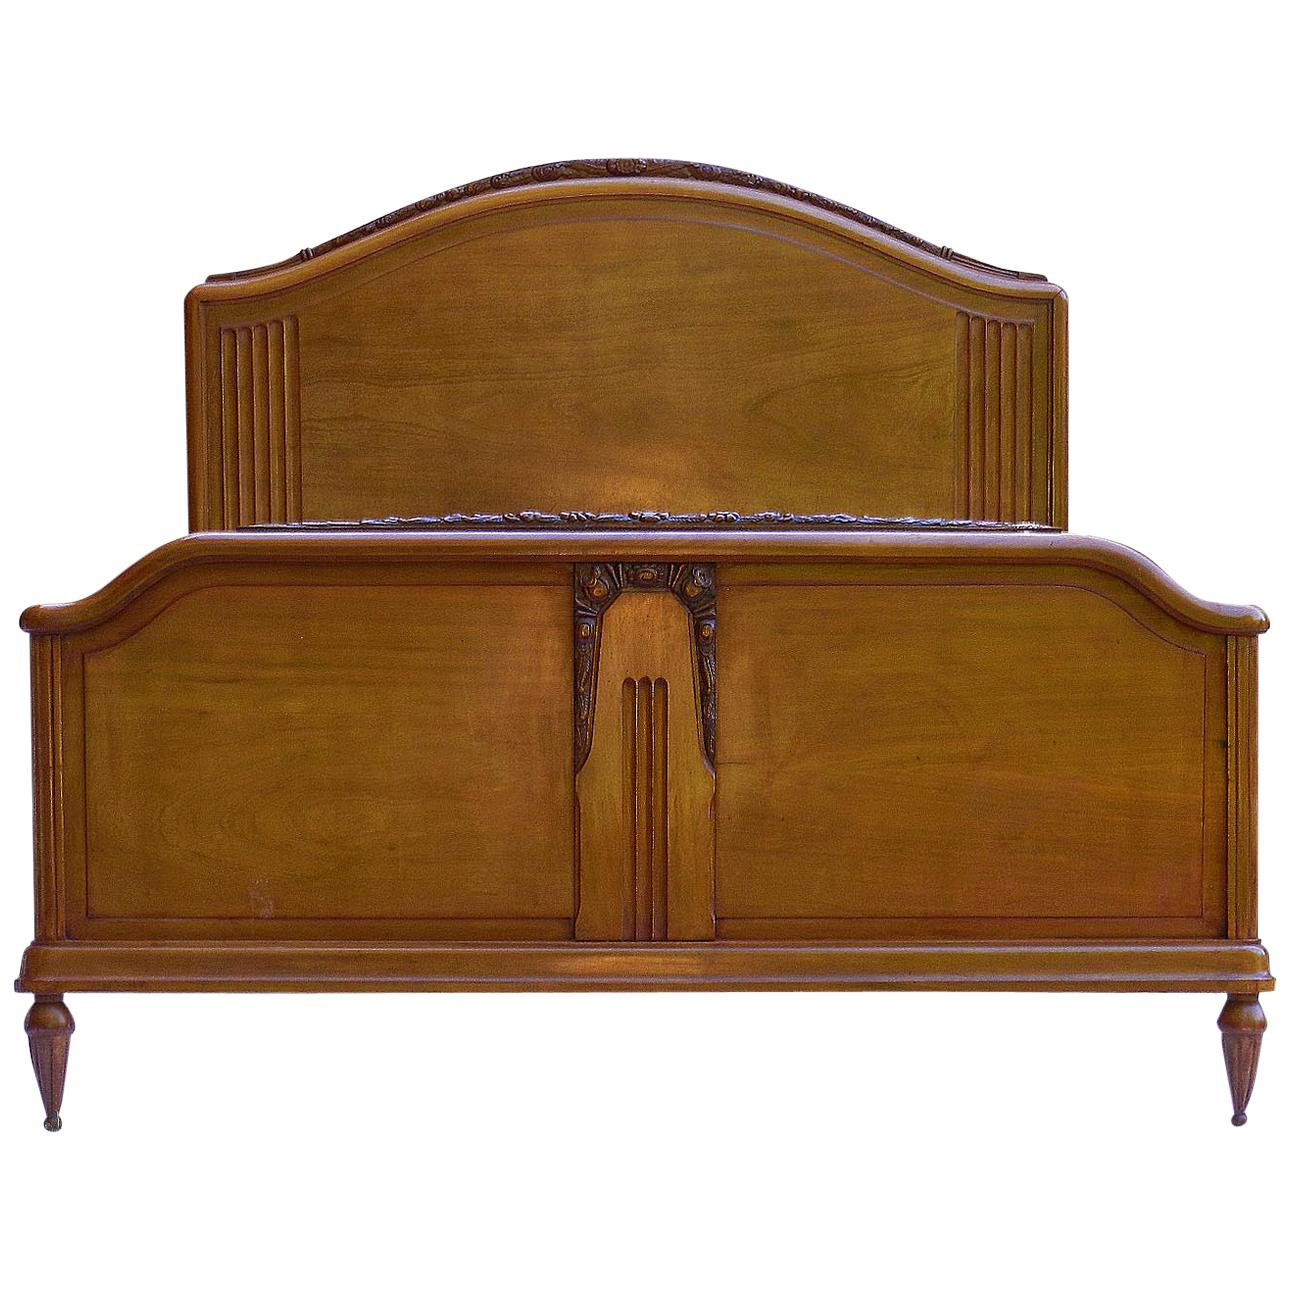 Antique/vintage Carved French Oak Double Bed Firm In Structure Edwardian (1901-1910) Antique Furniture